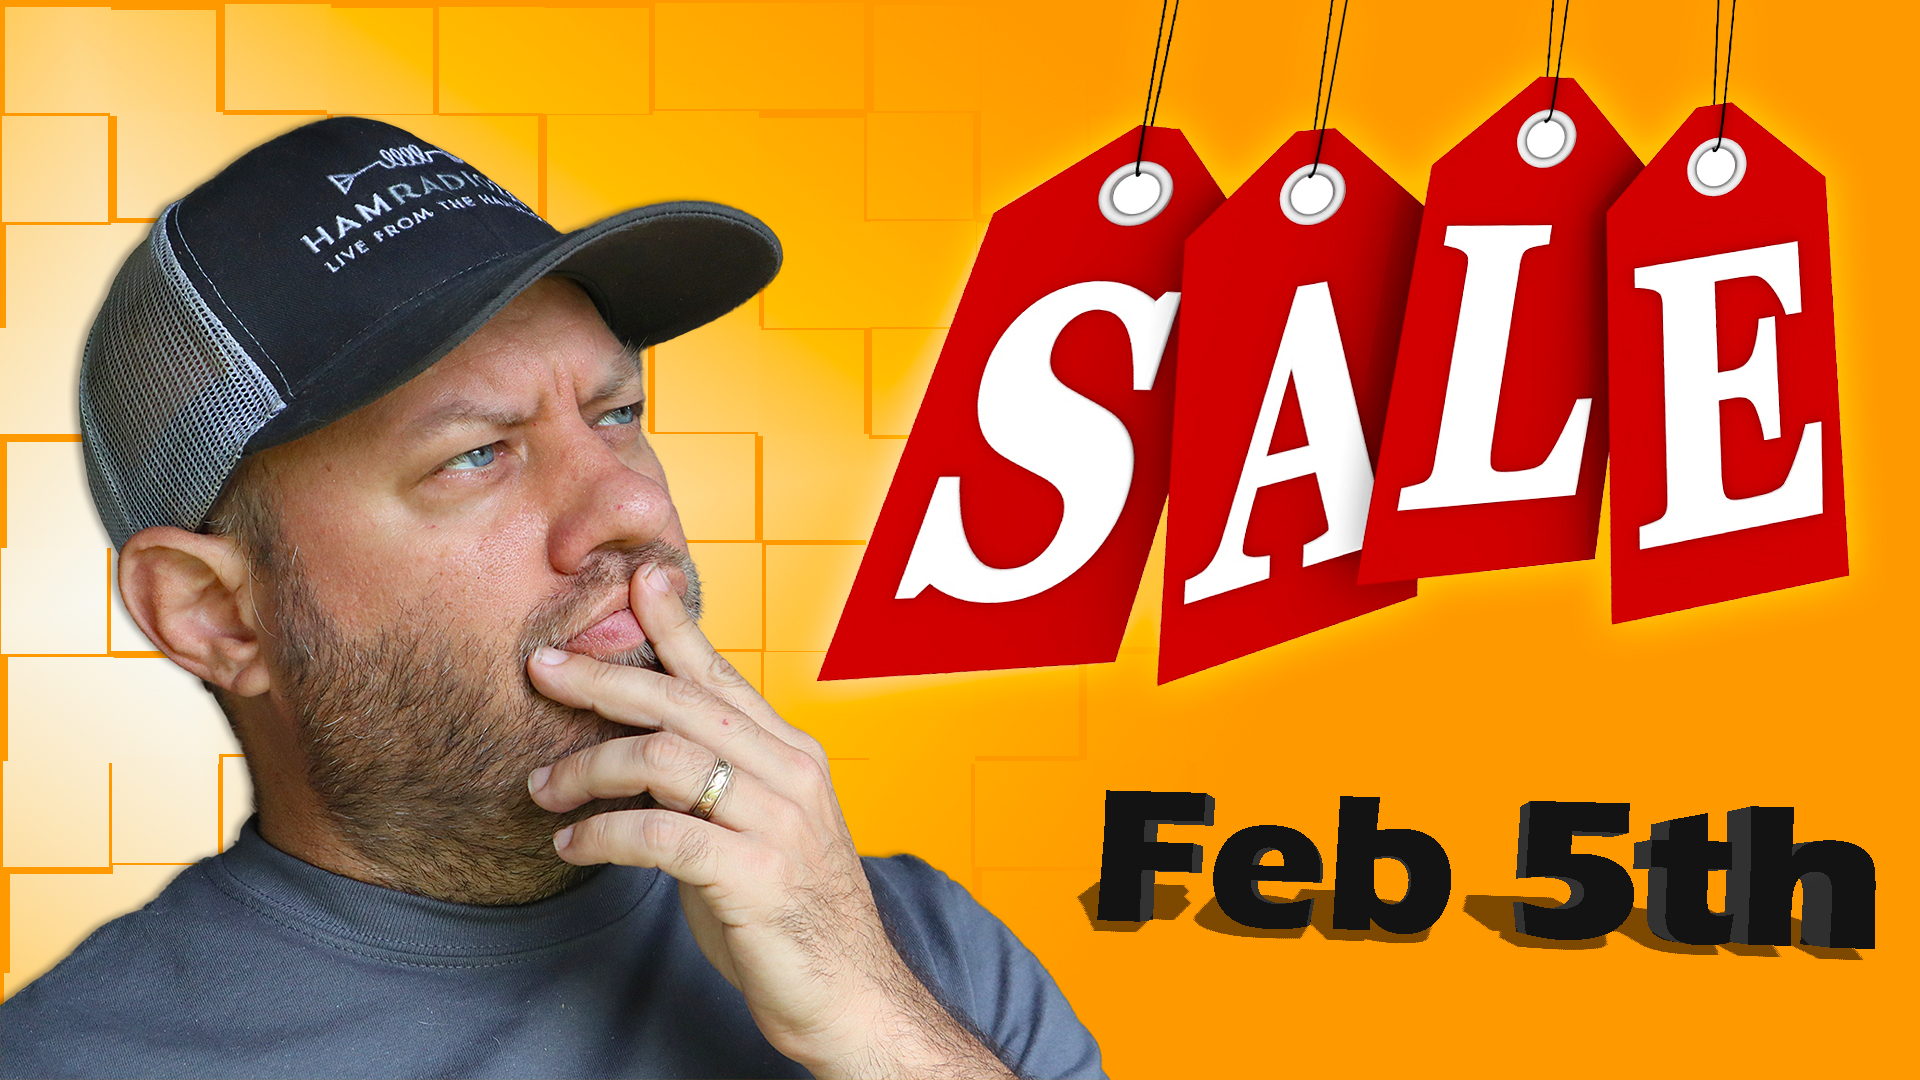 Episode 547: Ham Radio Shopping Deals for February 5th